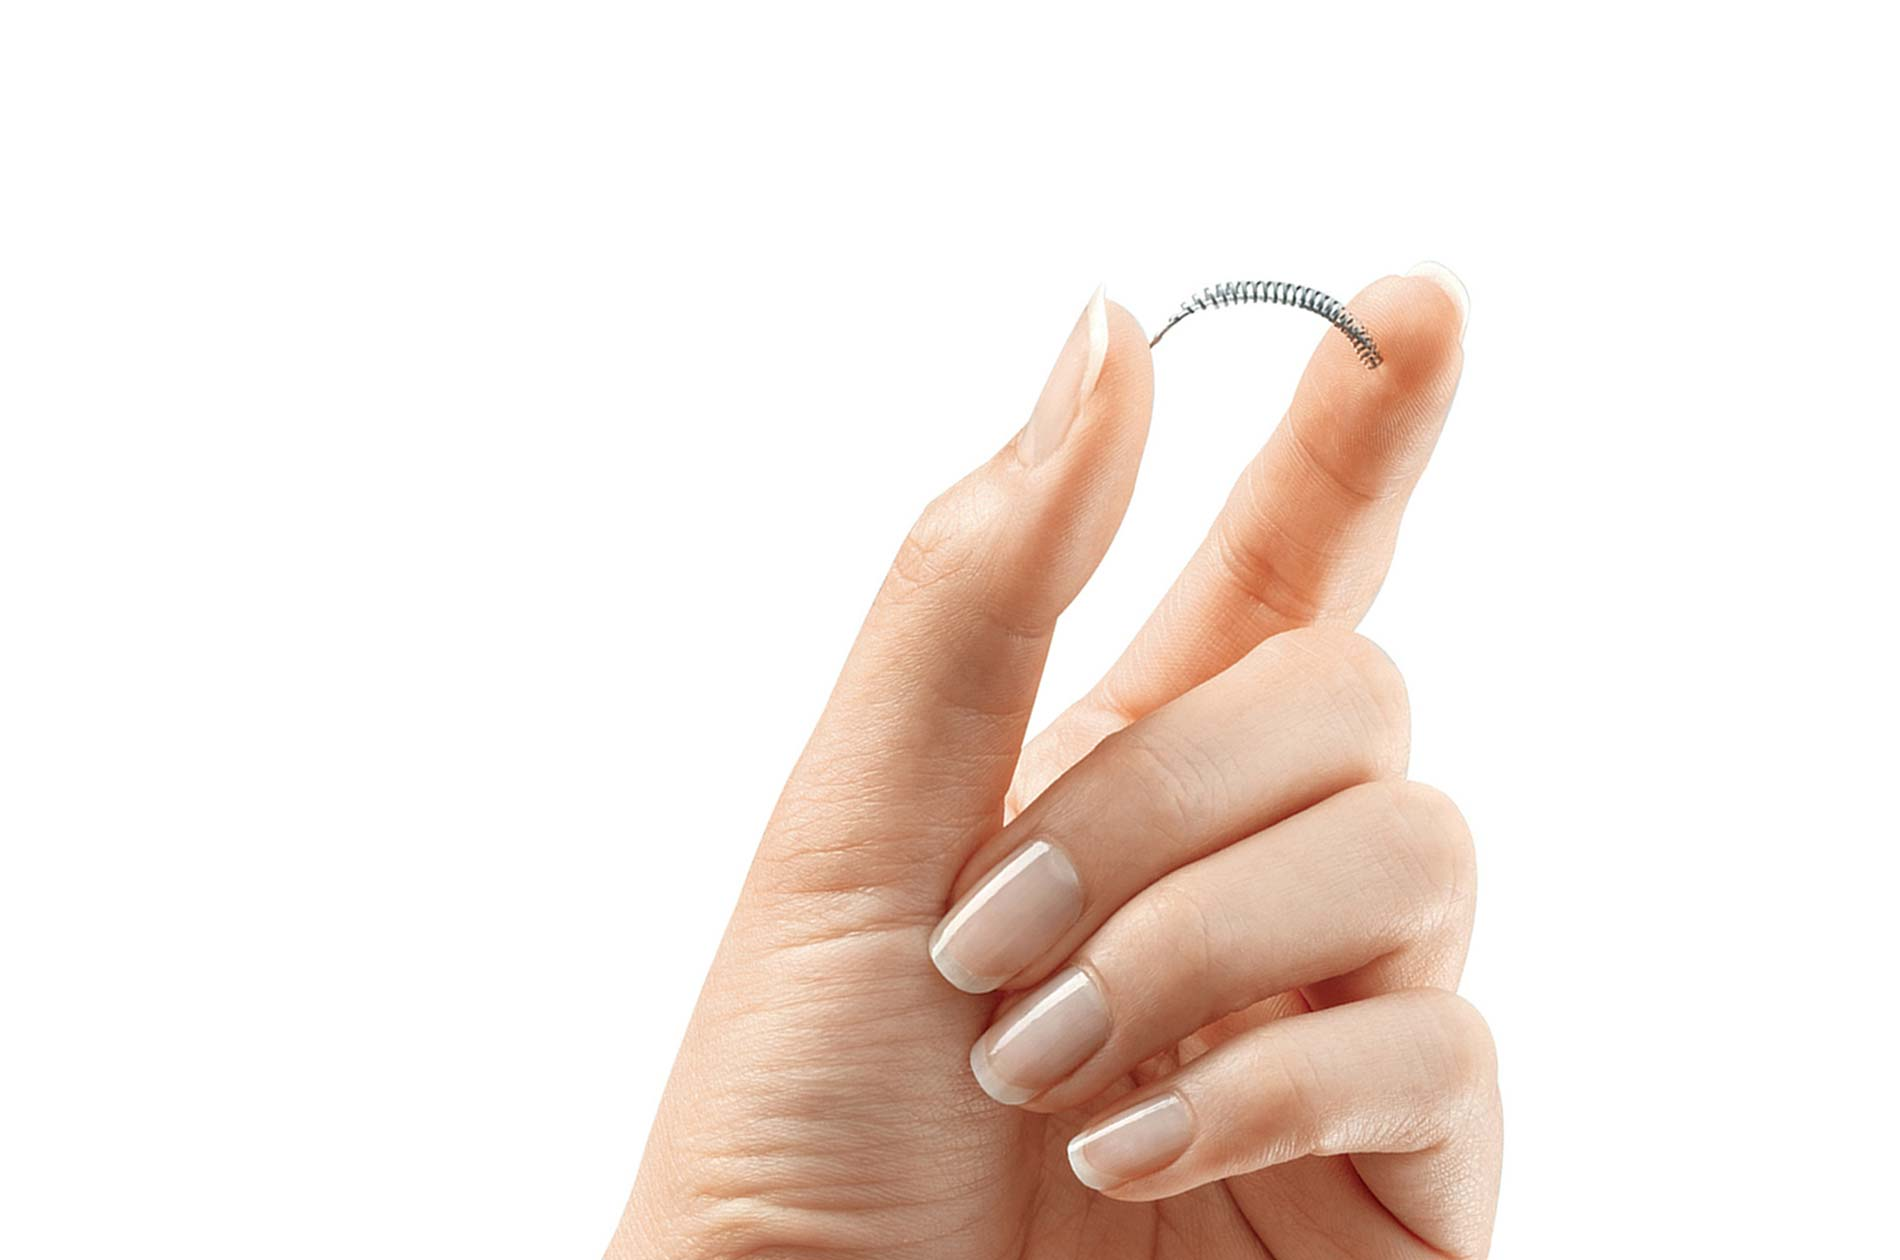 Patient holding an Essure coil